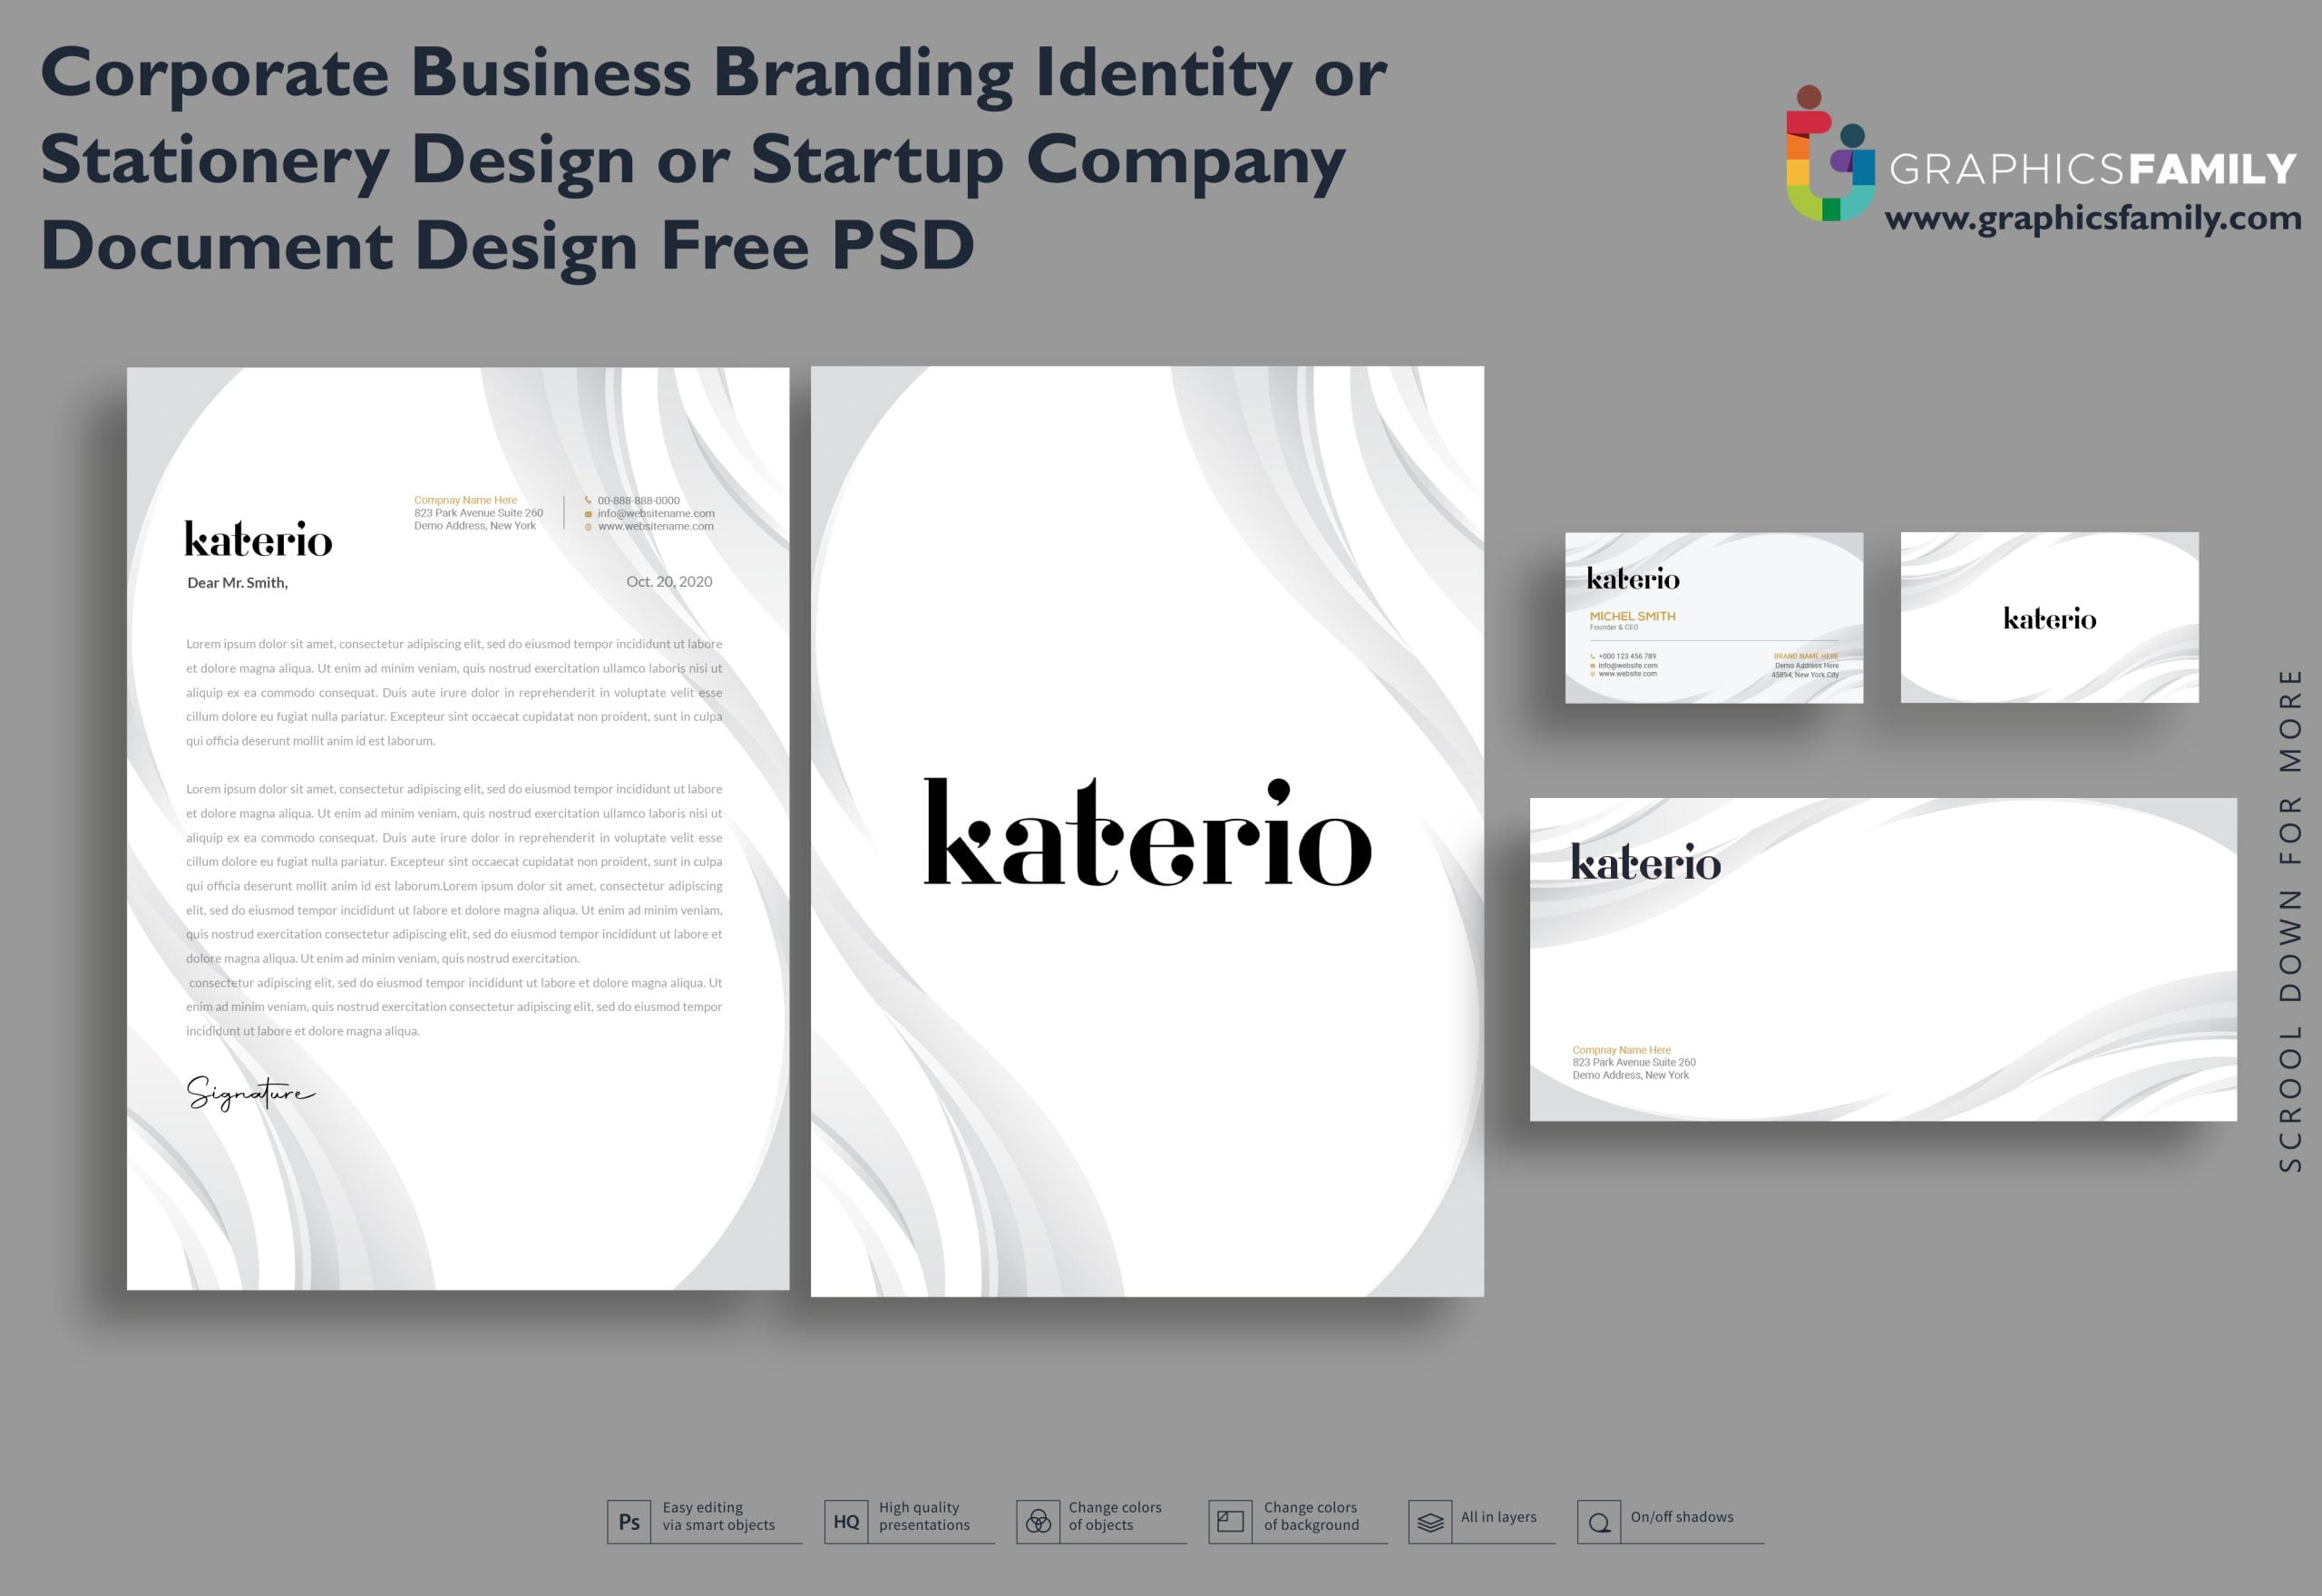 Corporate Business Branding Identity or Stationery Design Free Download